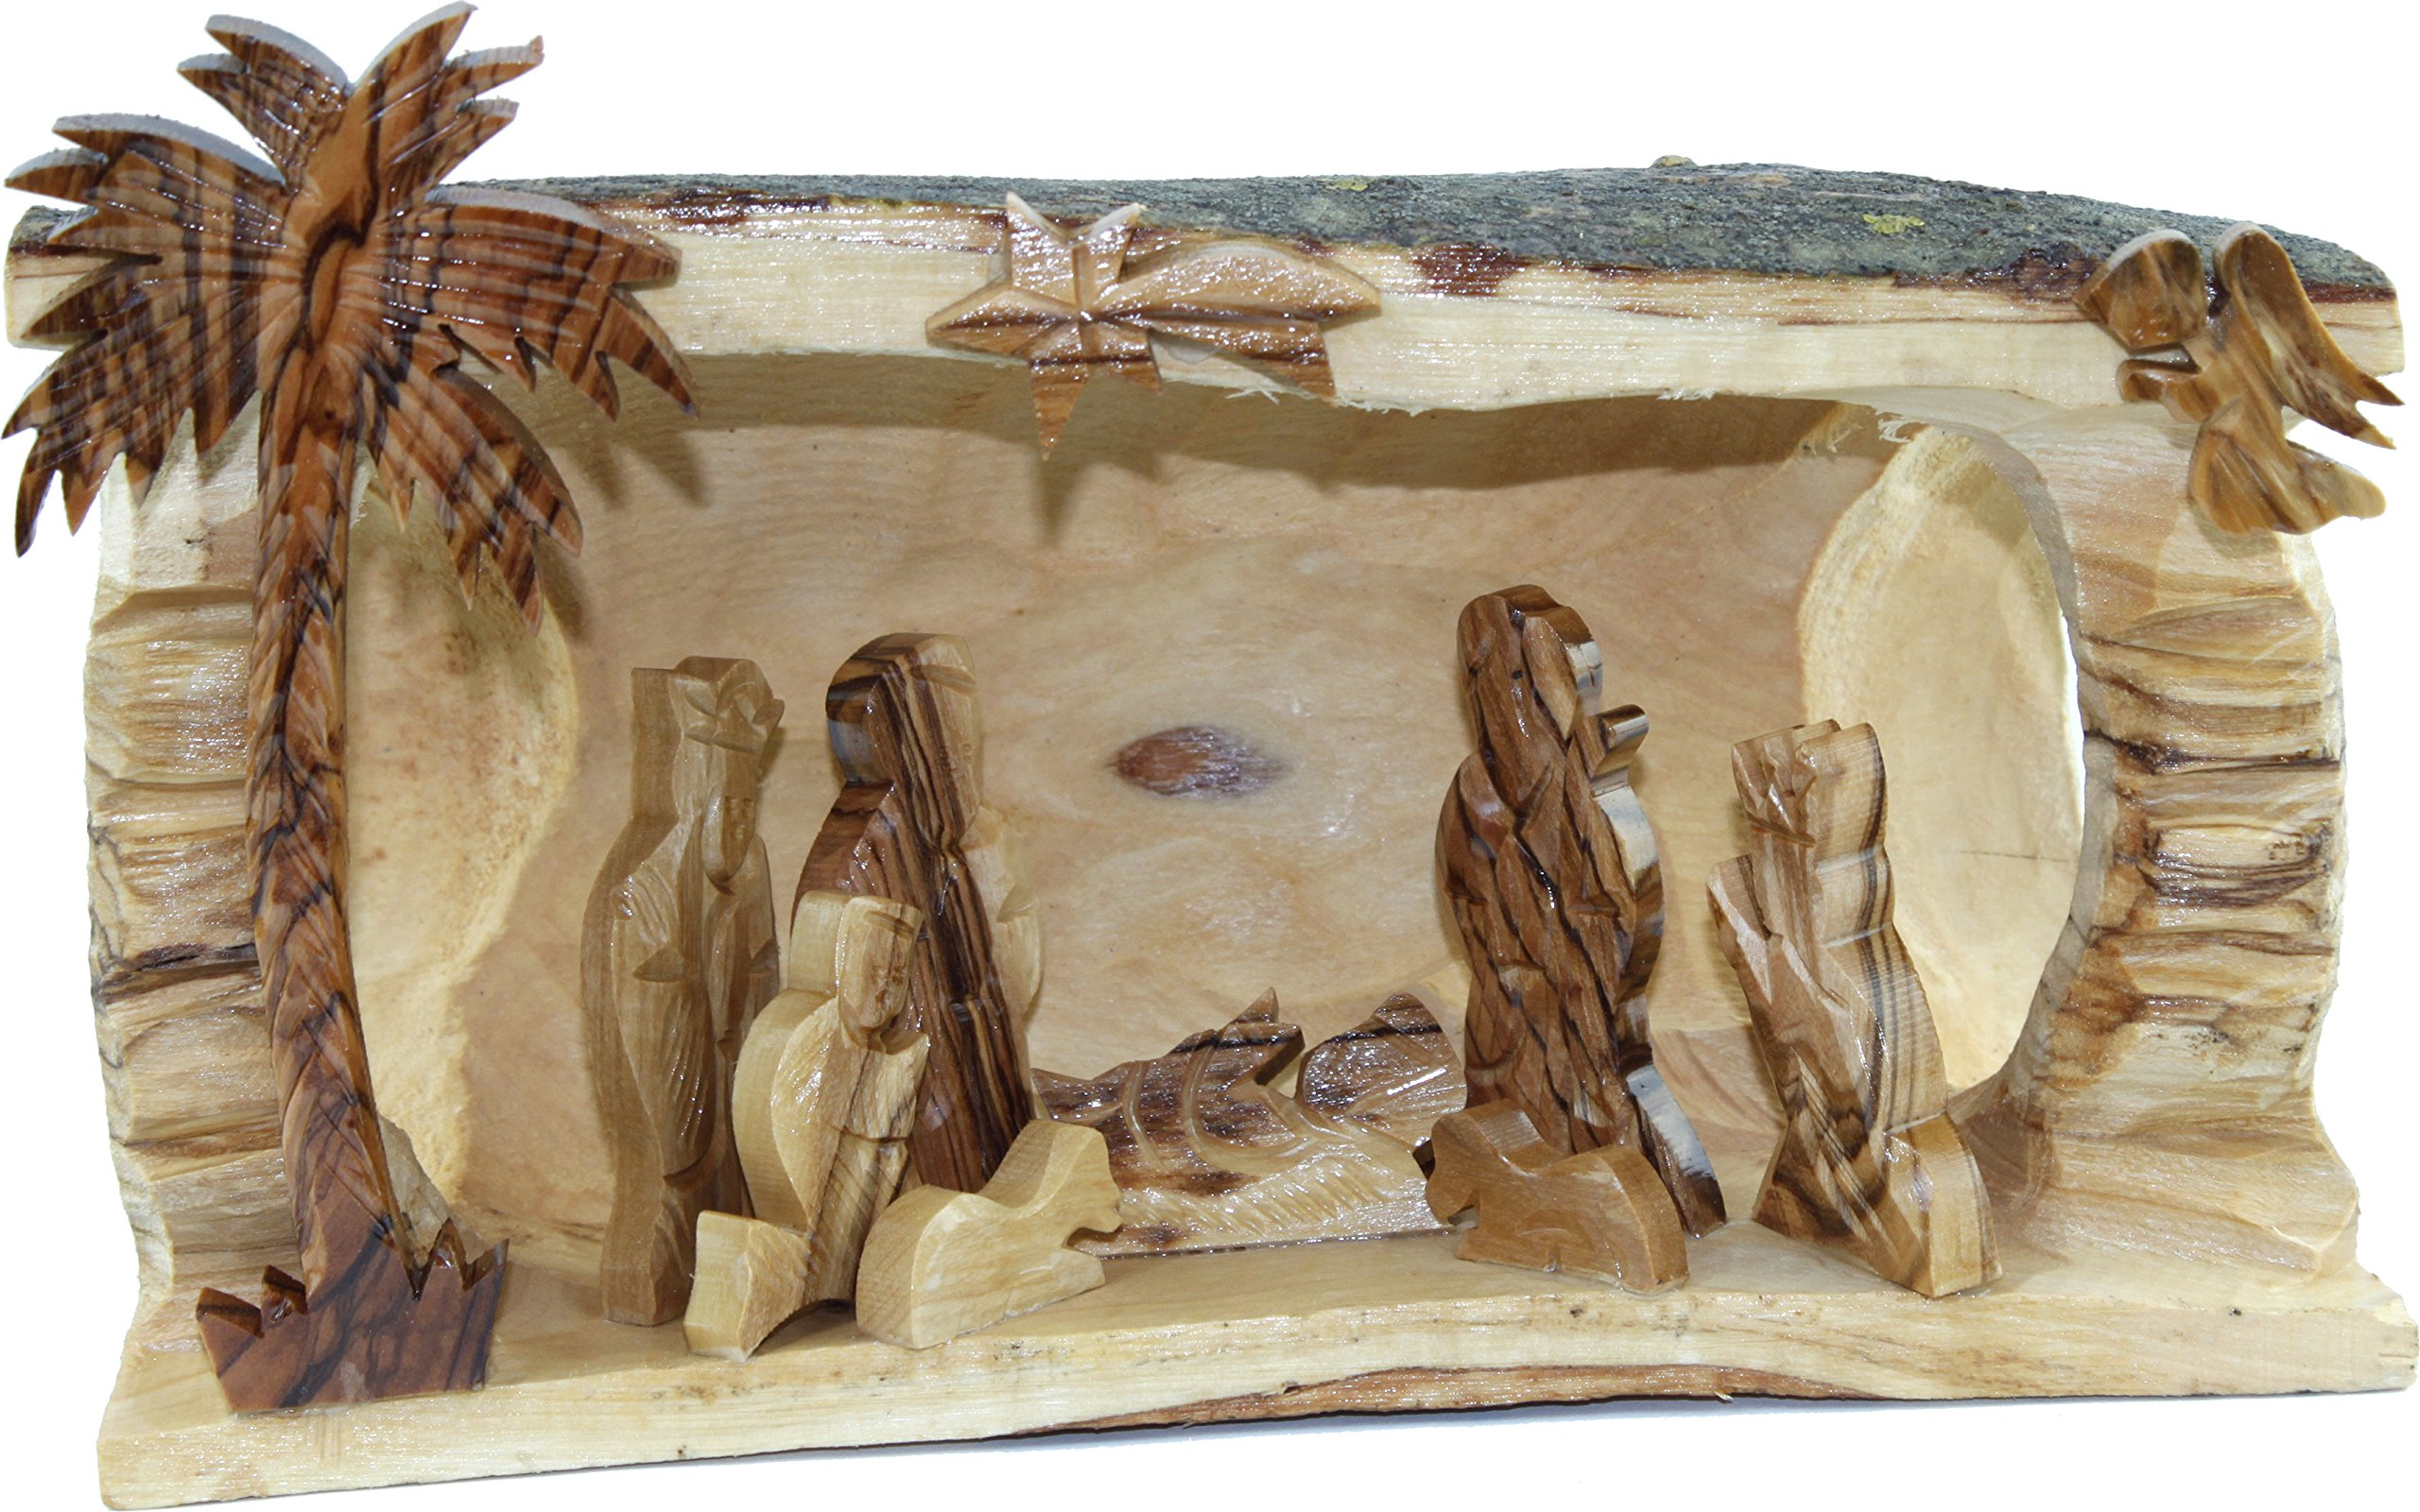 Holy Land Market Nativity - Olive Wood Large Log Nativity